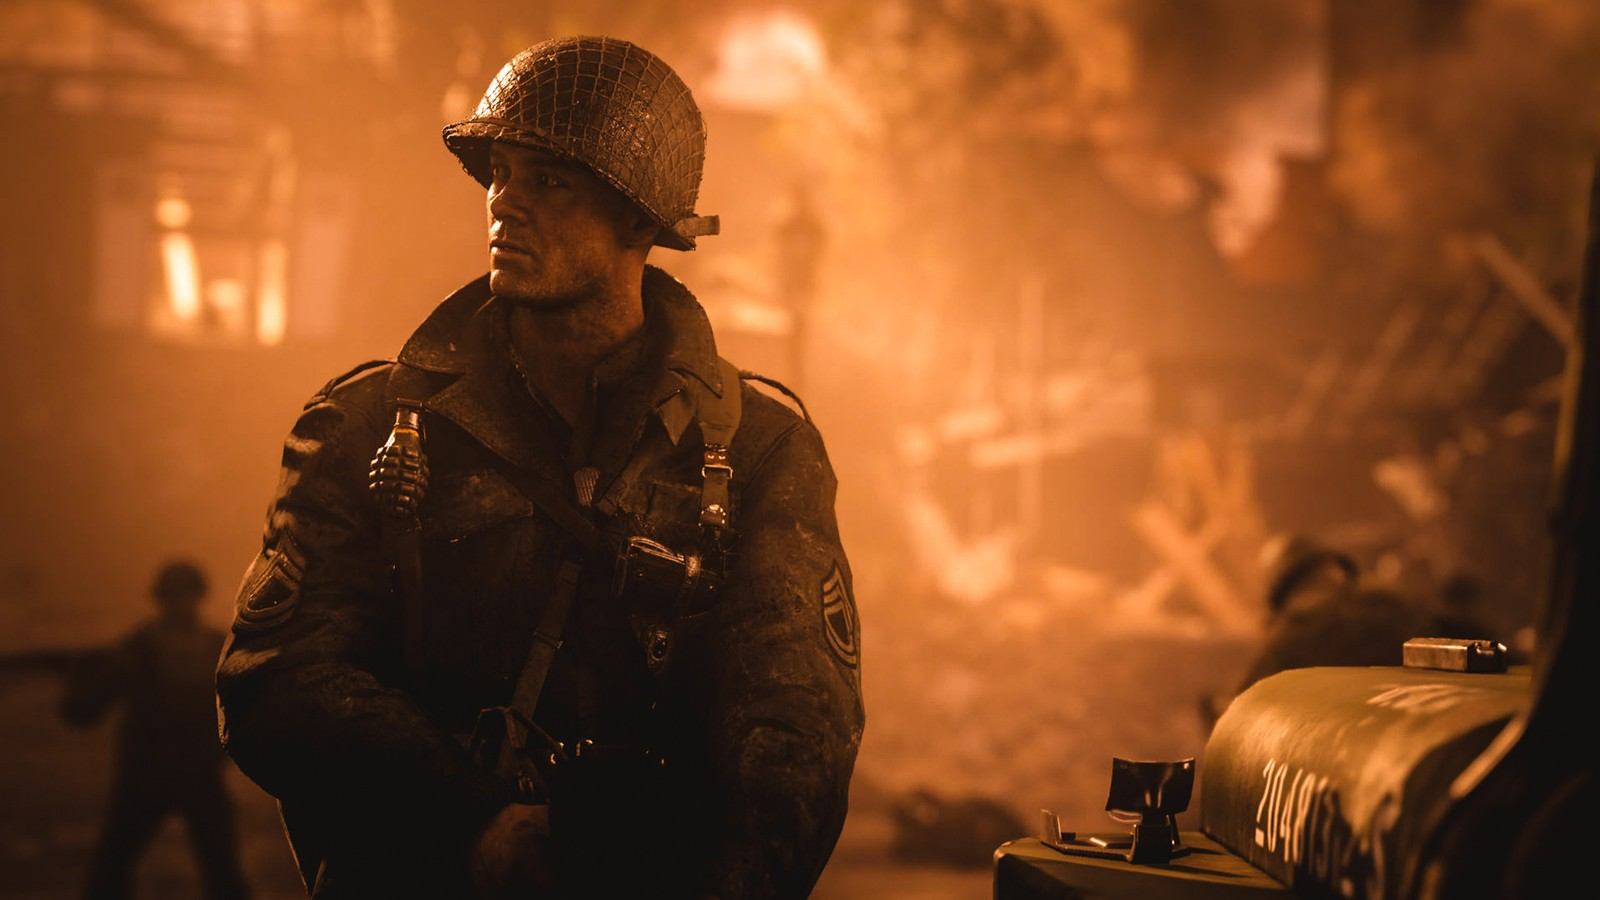 Watching History Fade Away in 'Call of Duty: WWII'